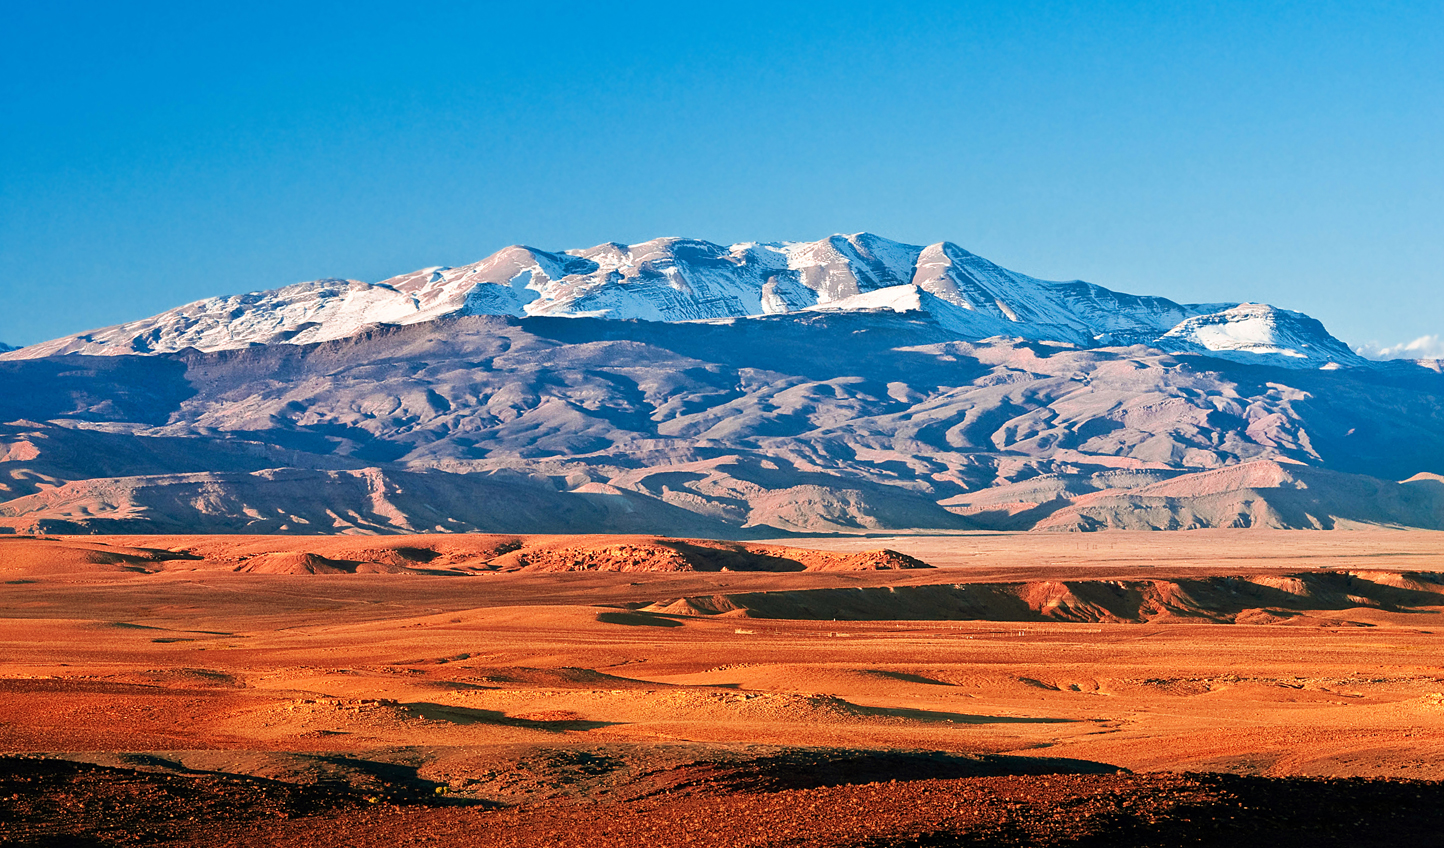 Leave the desert behind as you climb up into the Atlas Mountains